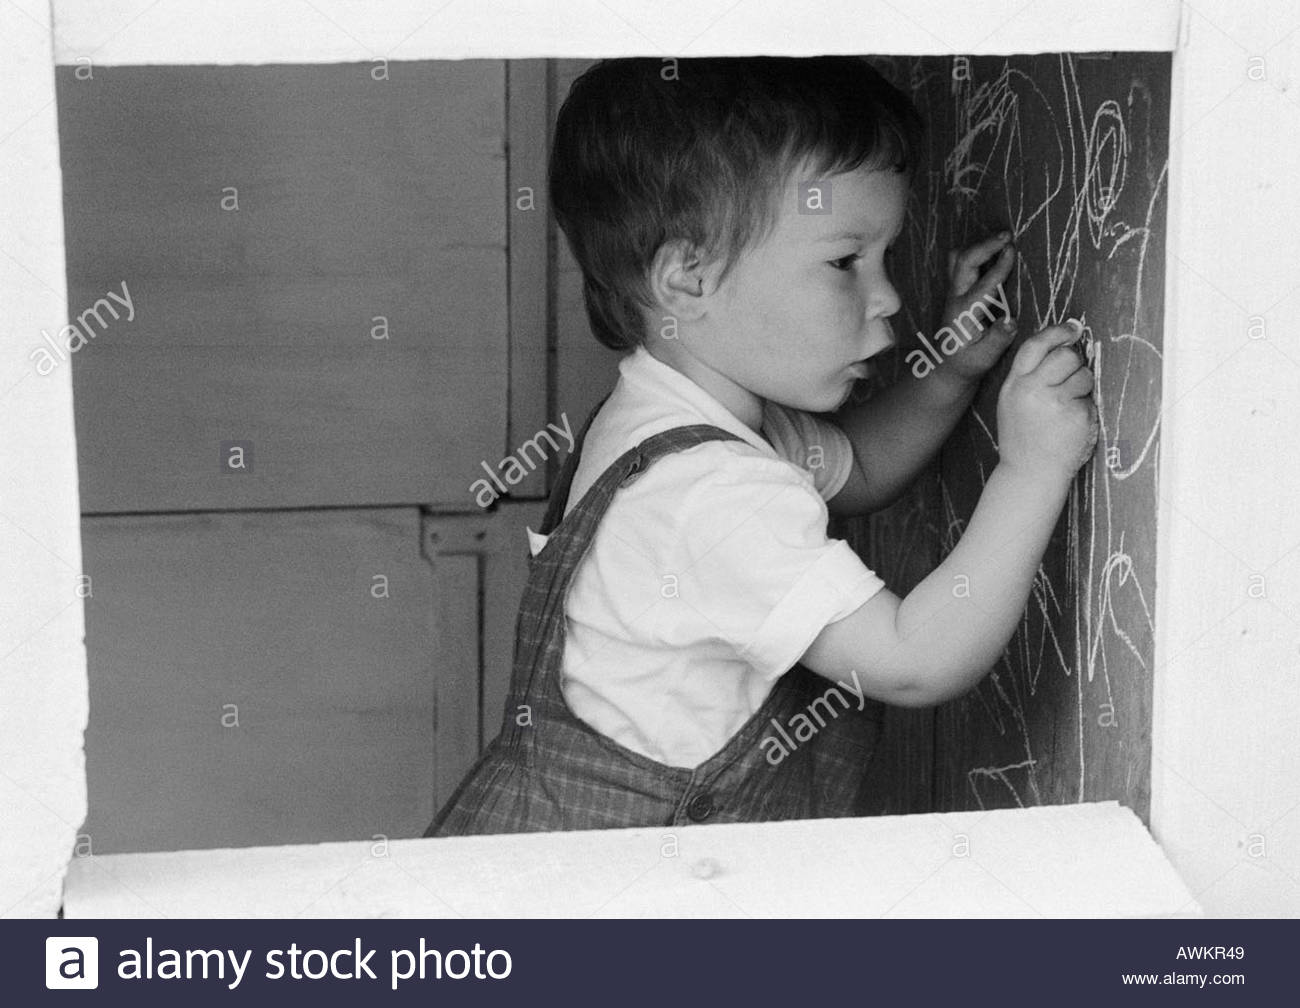 Kid Drawing Wall Stock Photos & Kid Drawing Wall Stock Images.